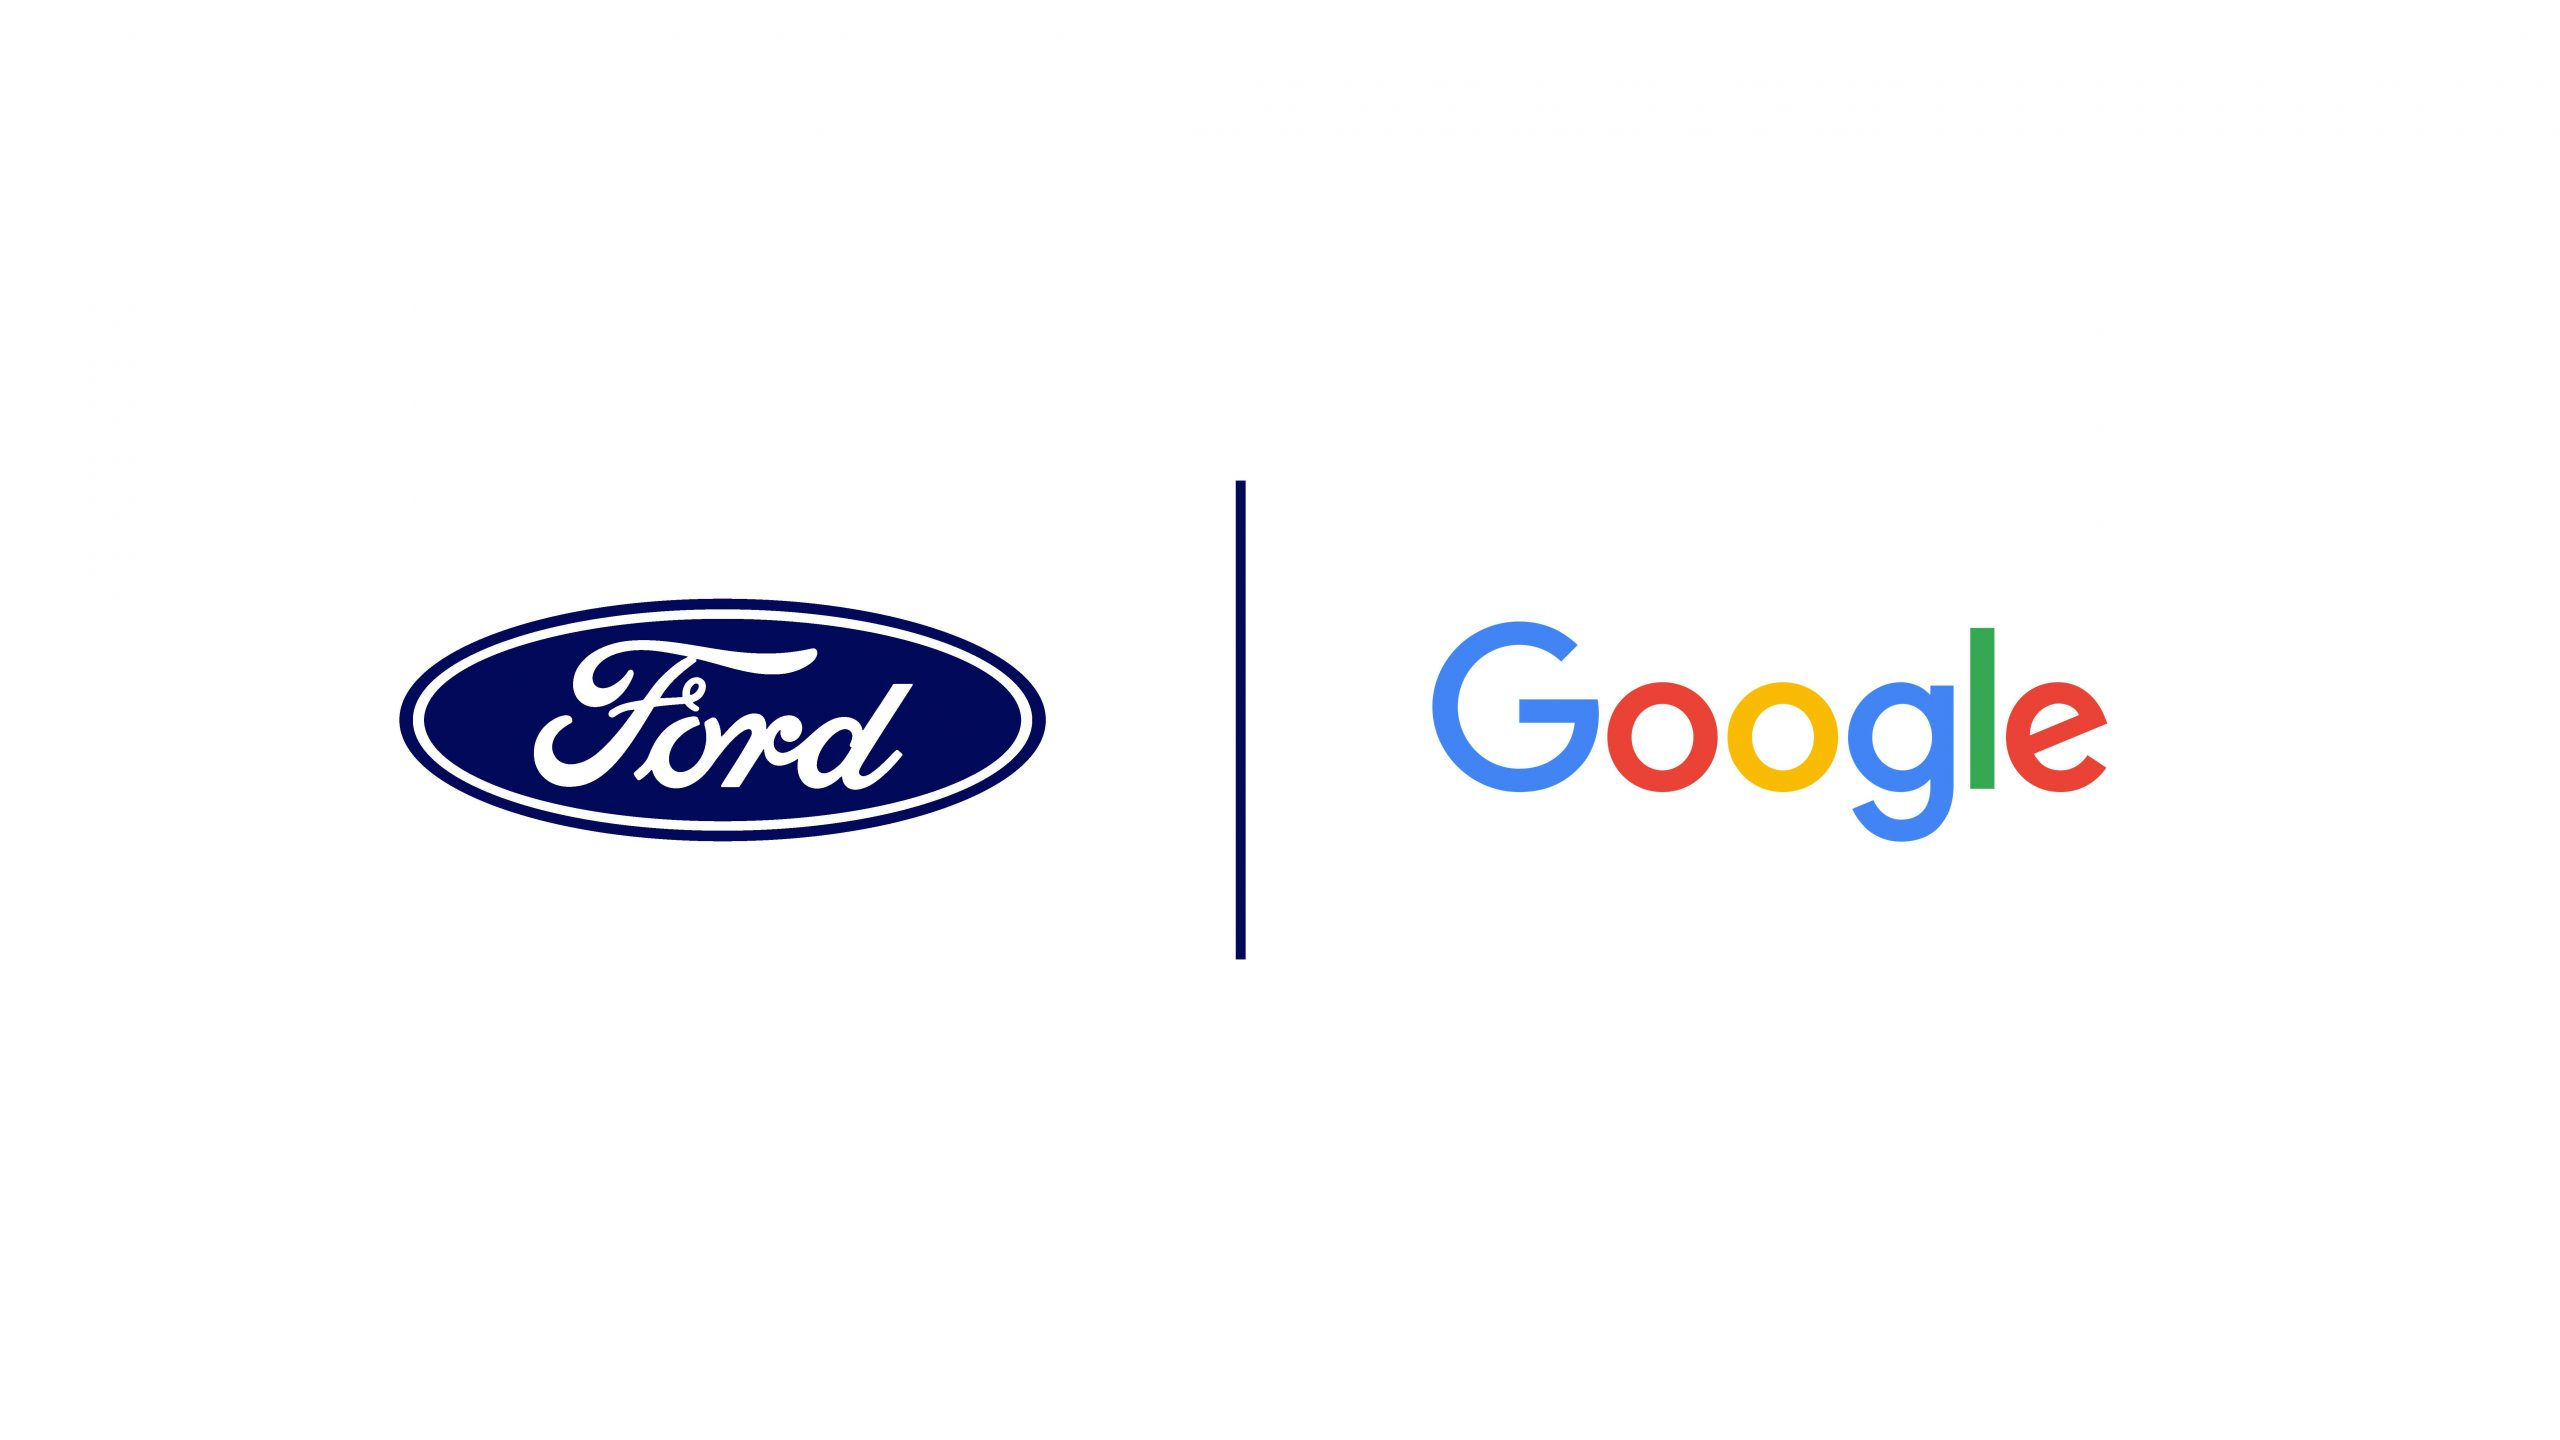 Ford-Google partnership